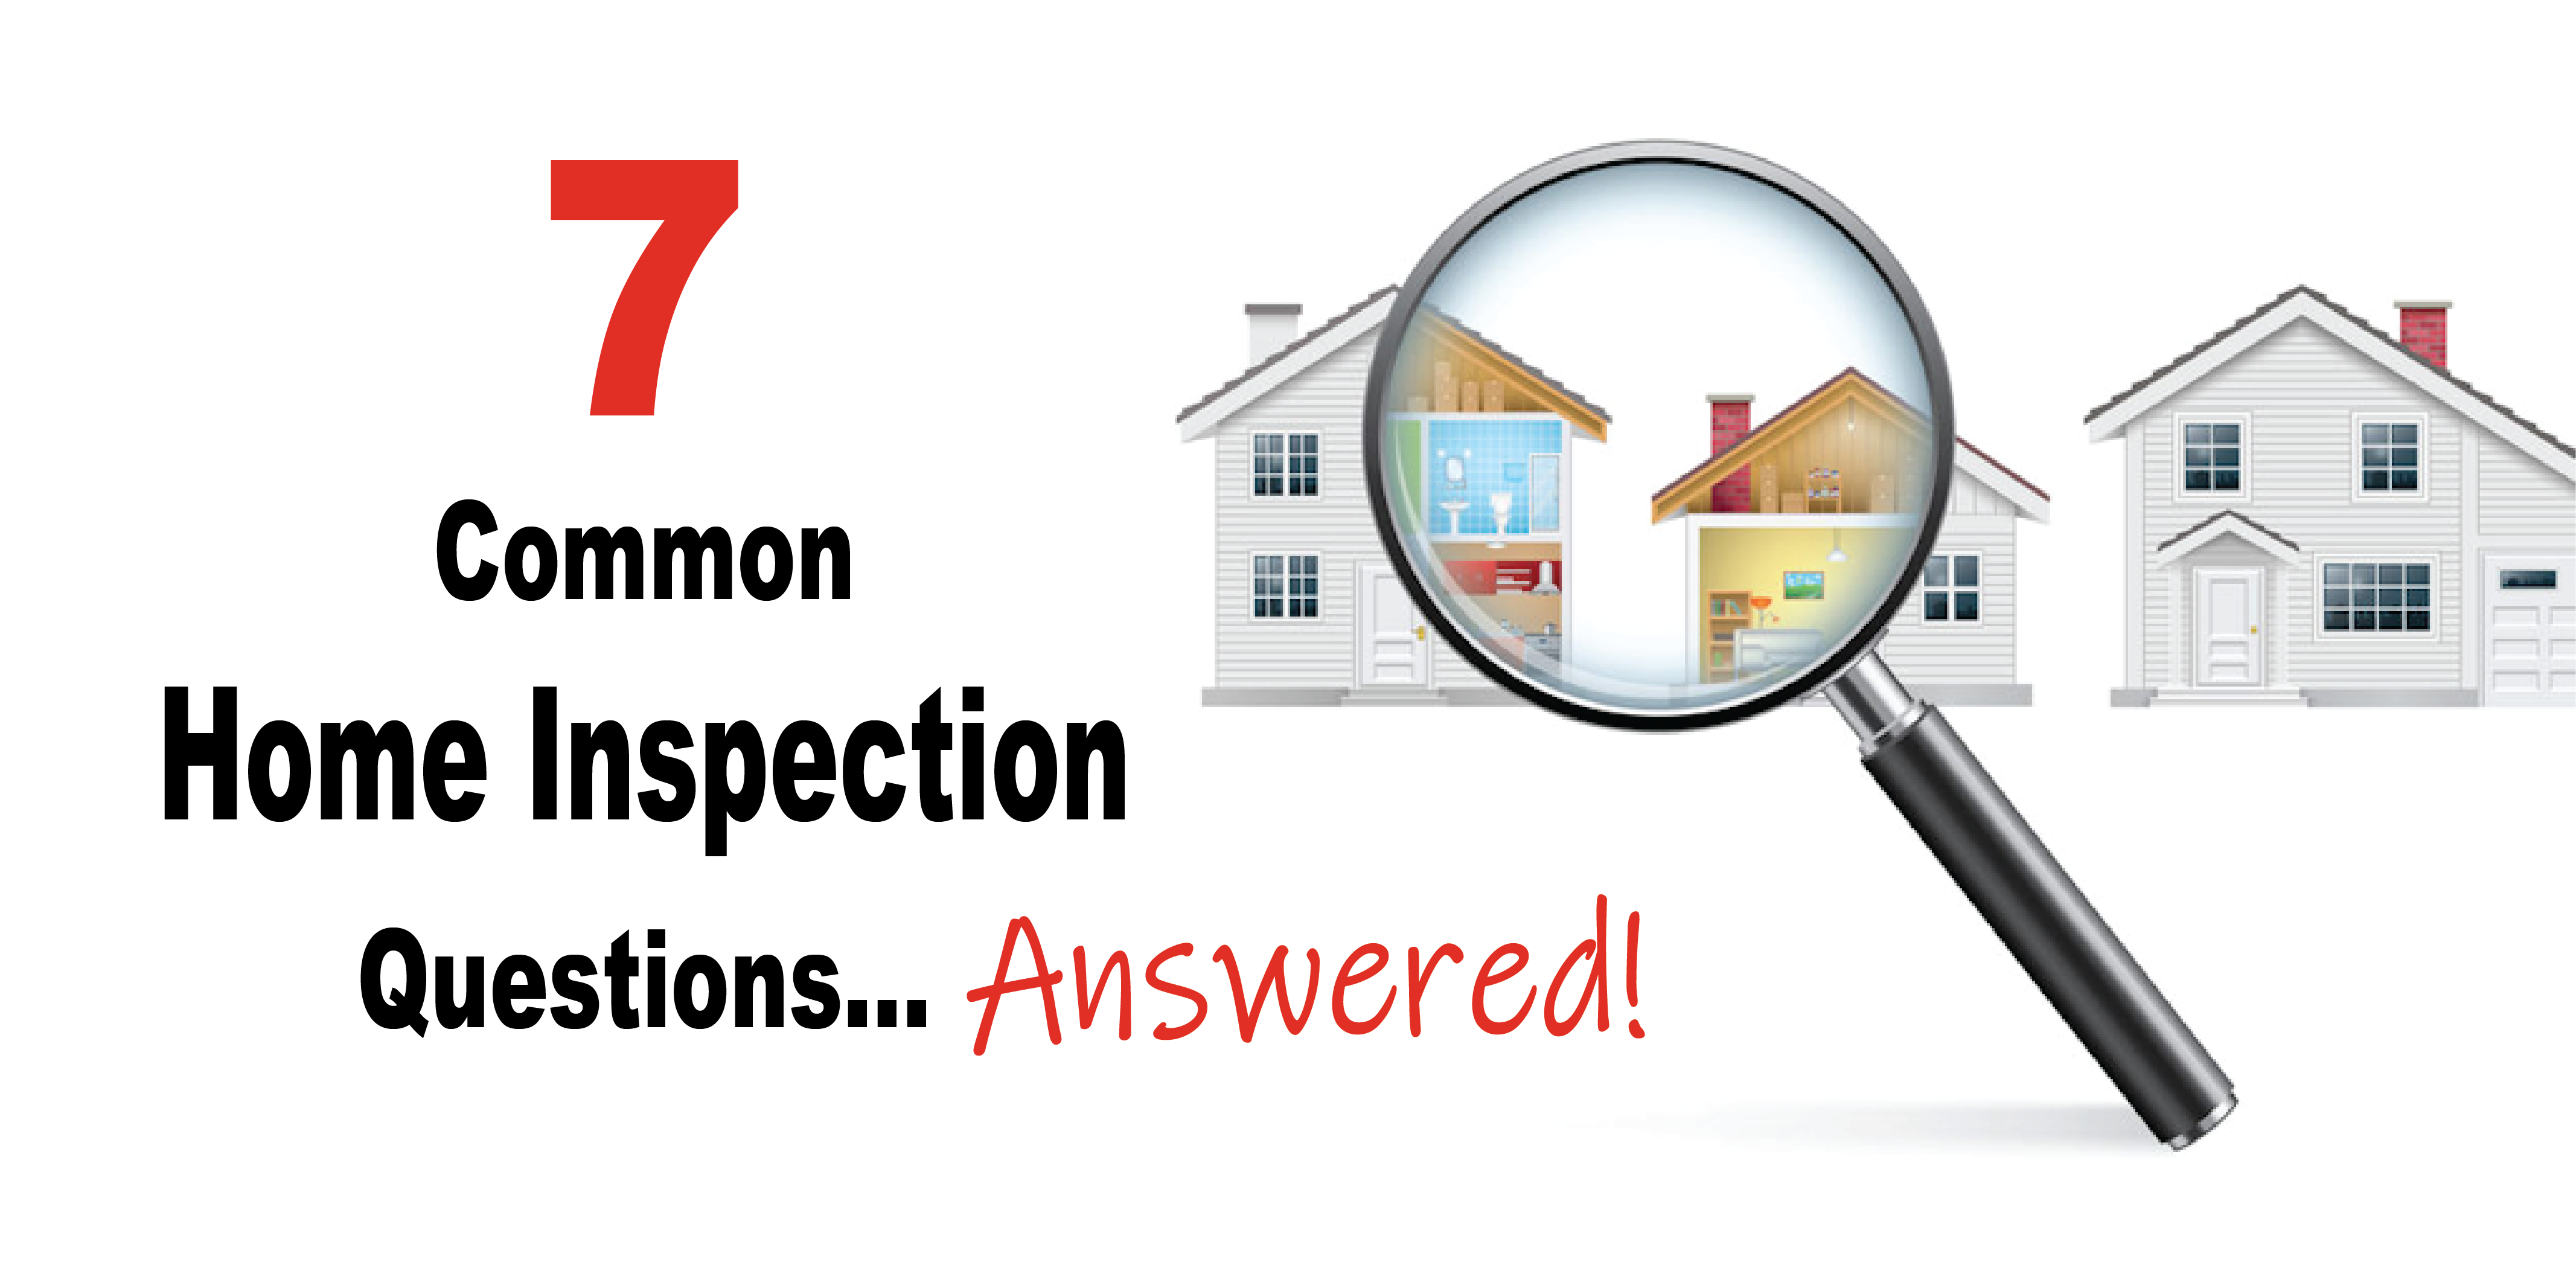 7 Common Home Inspection Questions Answered - 360 Inspections Kansas City